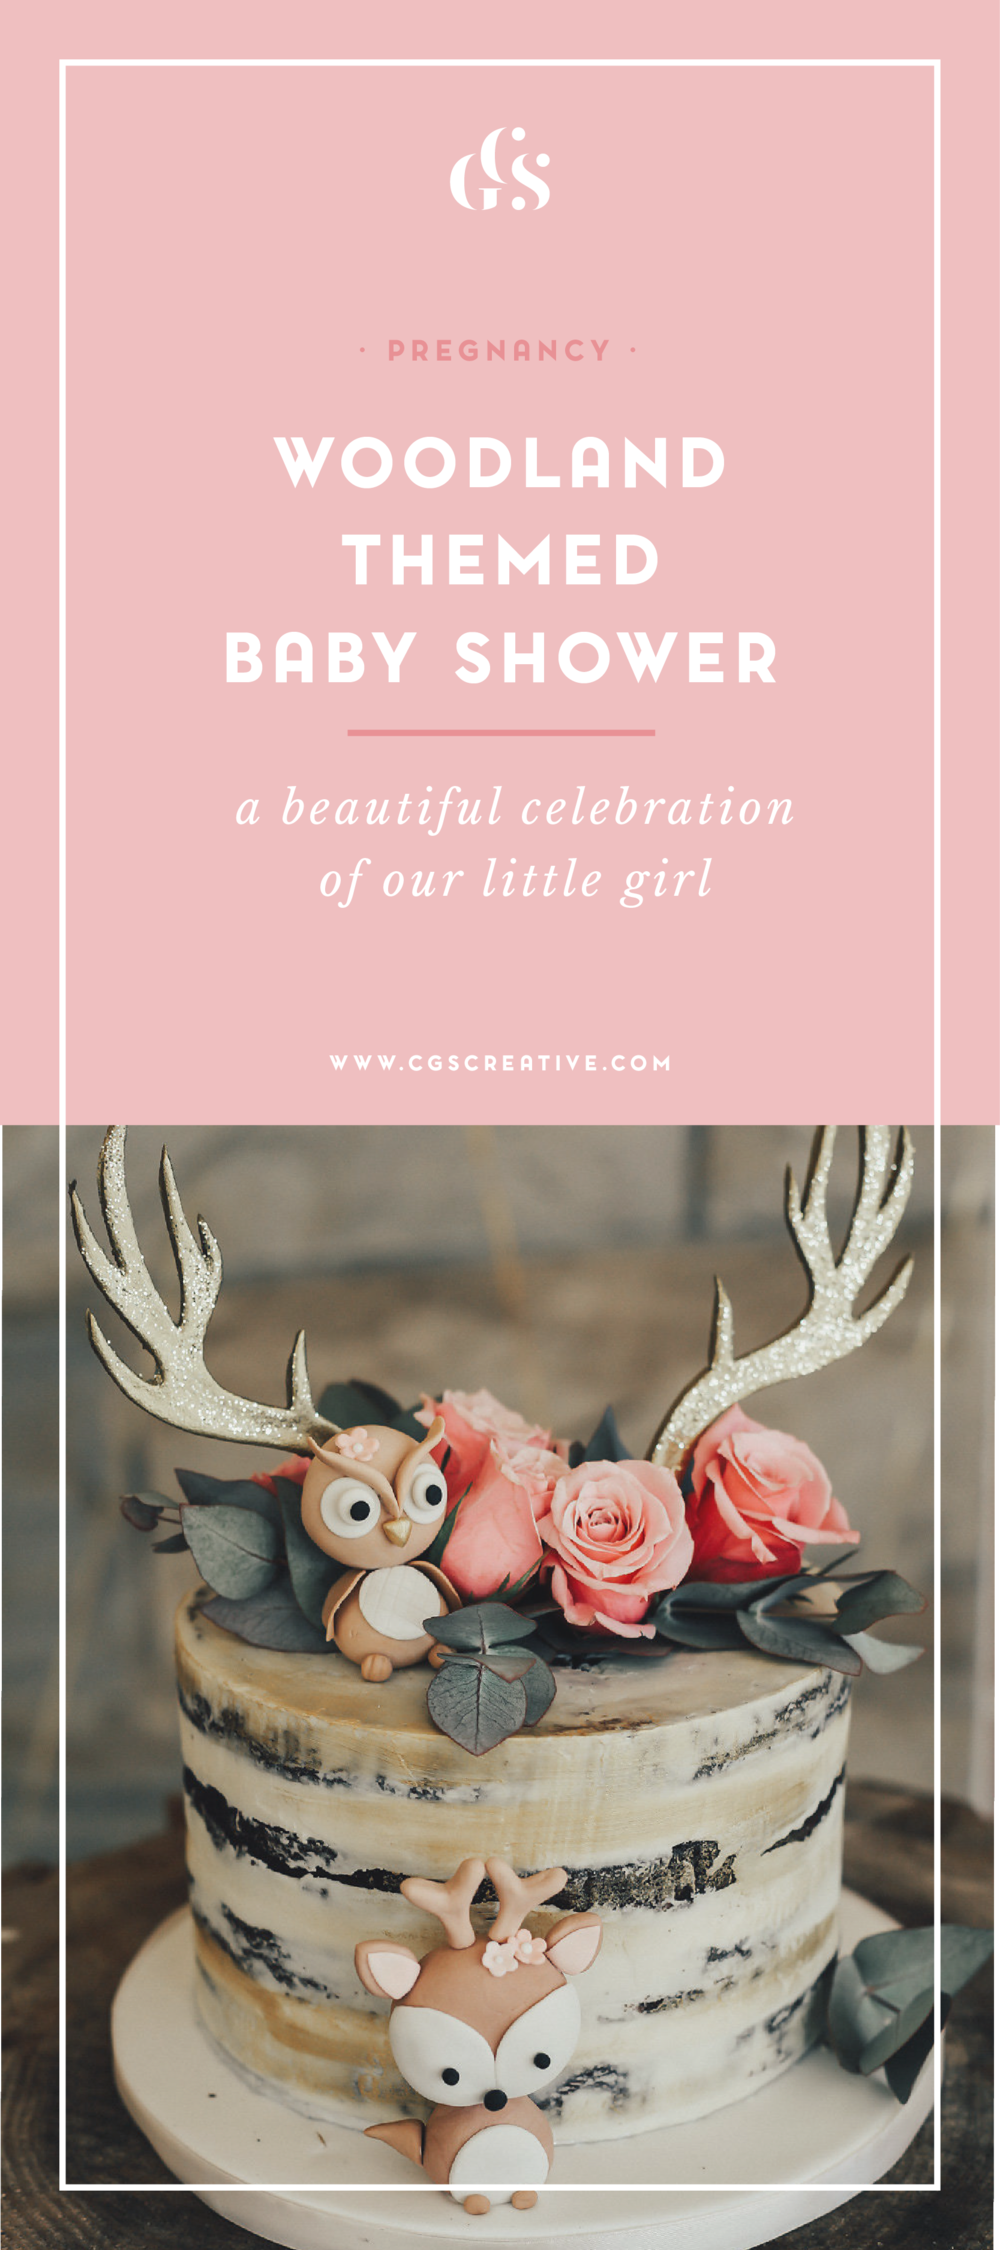 Woodland Theme Baby Shower for Girl CityGirlSearching South African Blogger_Artboard 4.png